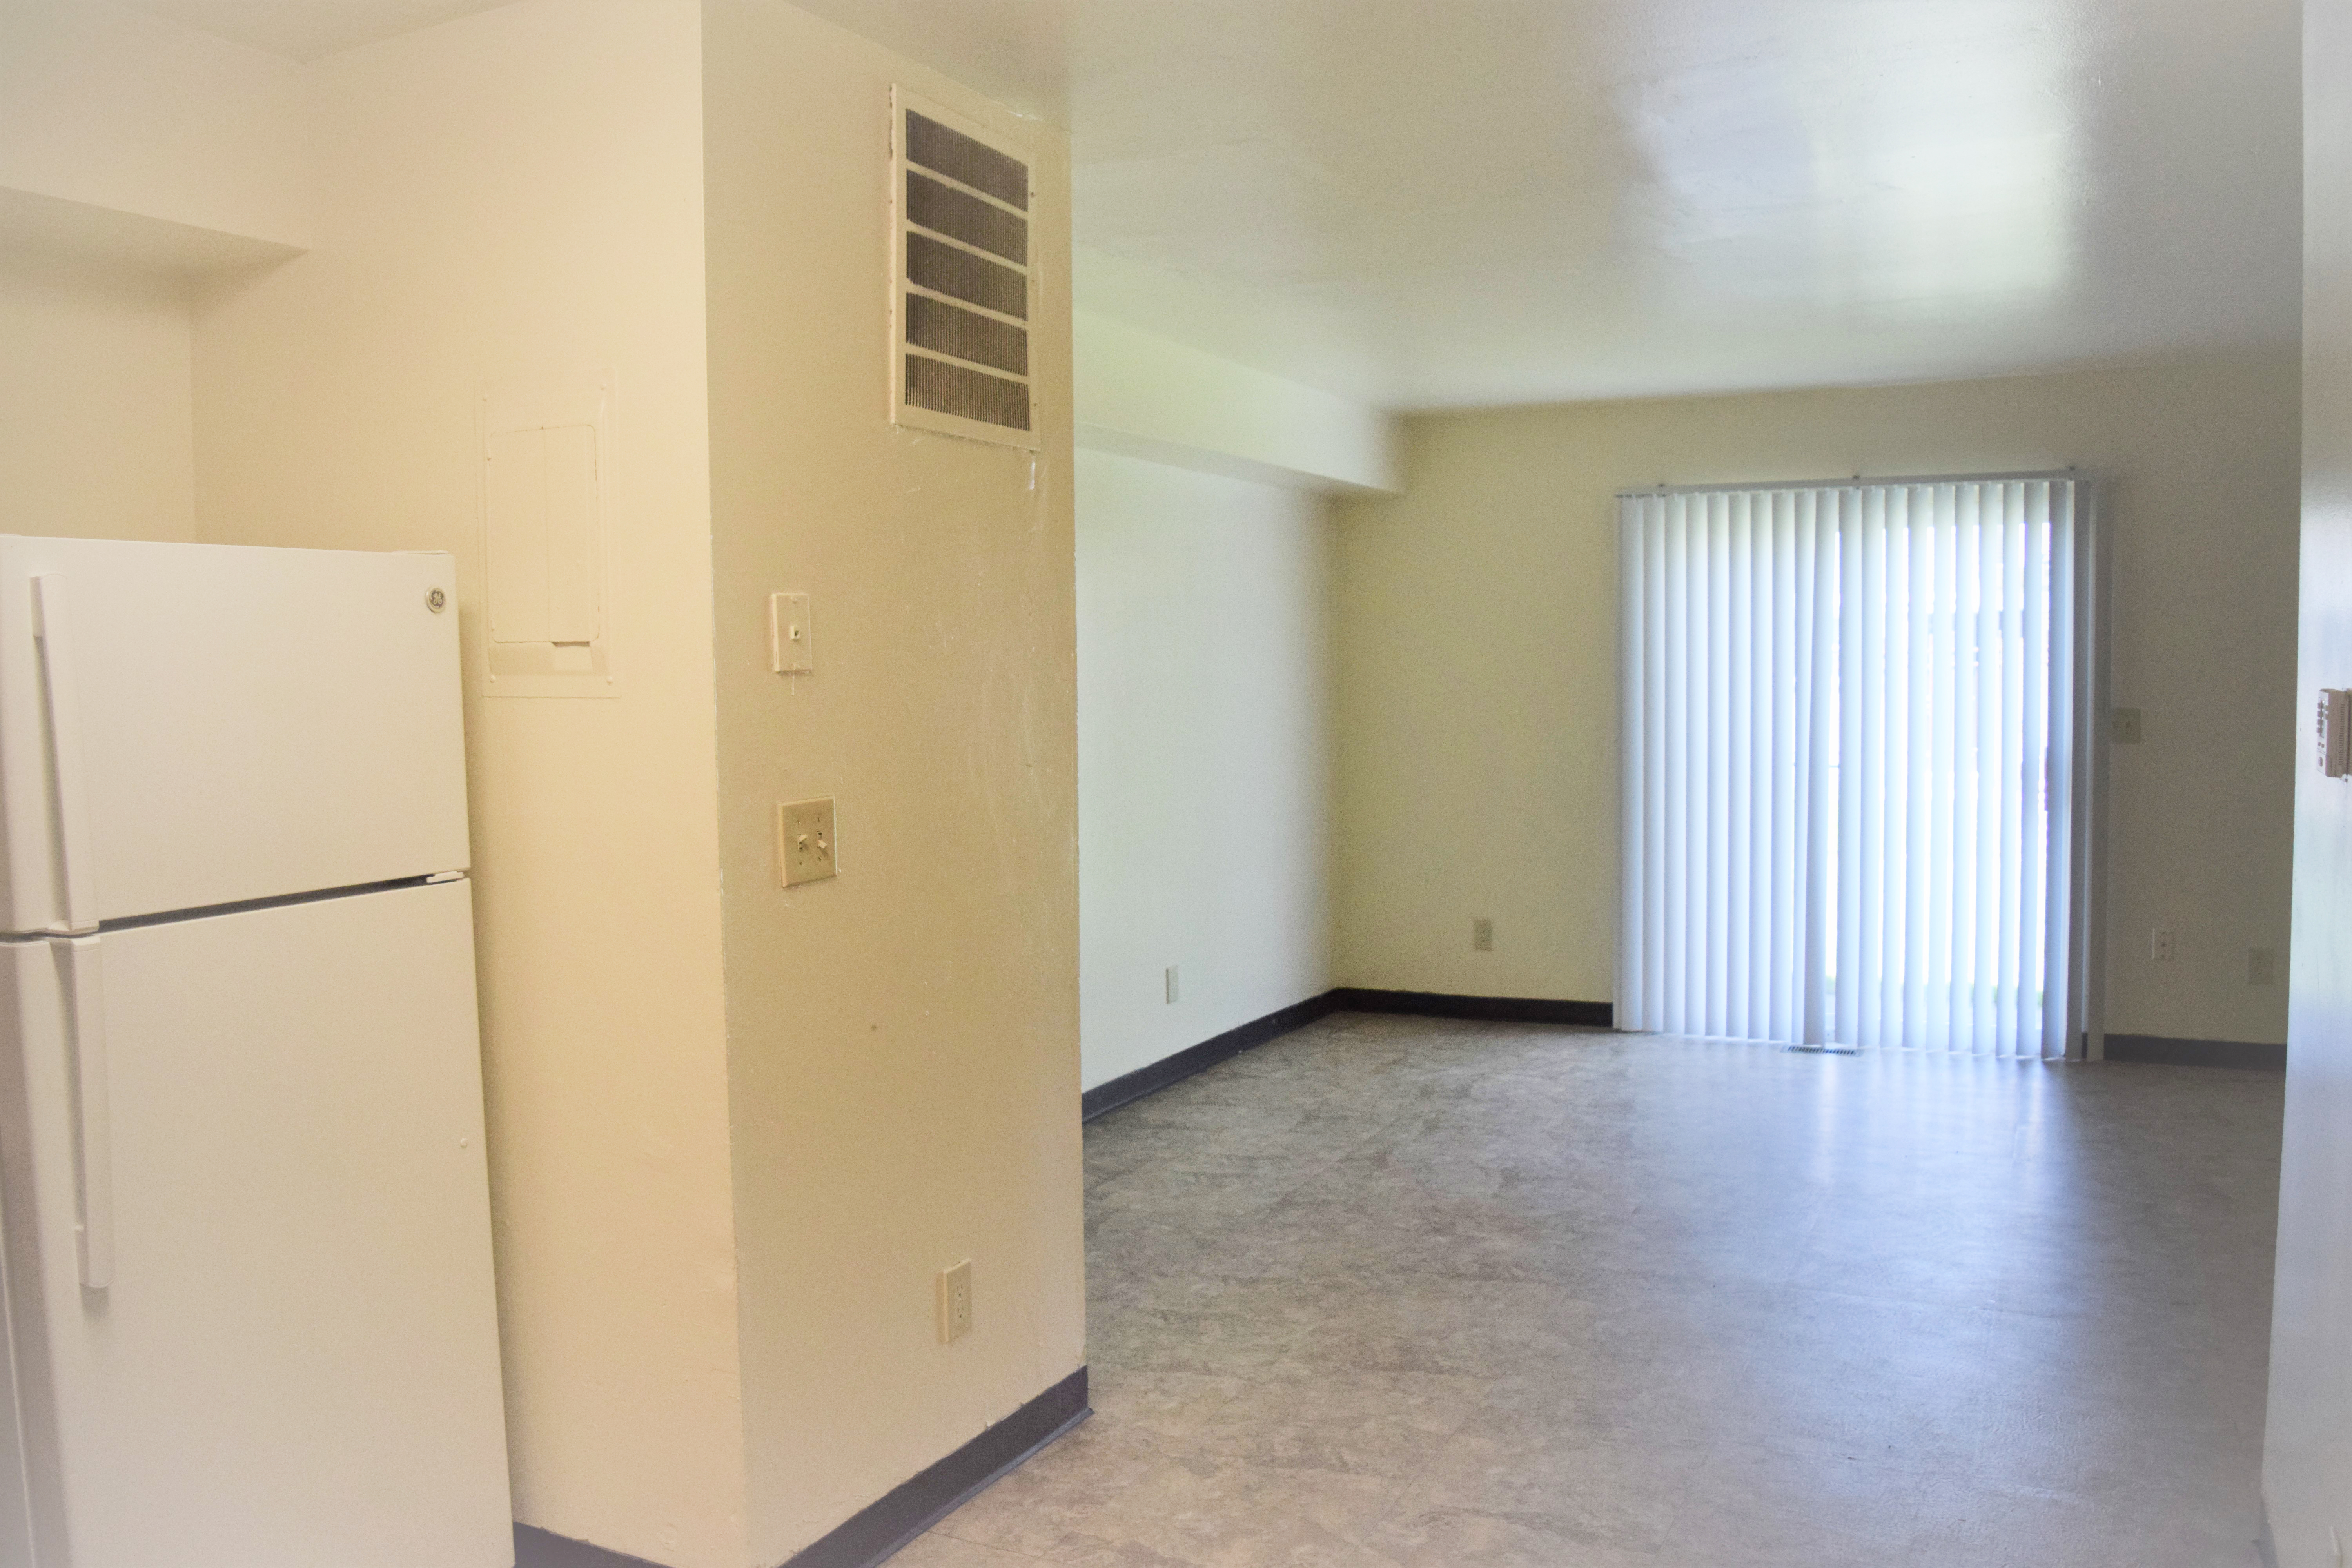 Live at Eagle Ridge (Affordable Housing; Income Limit Restrictions Apply)